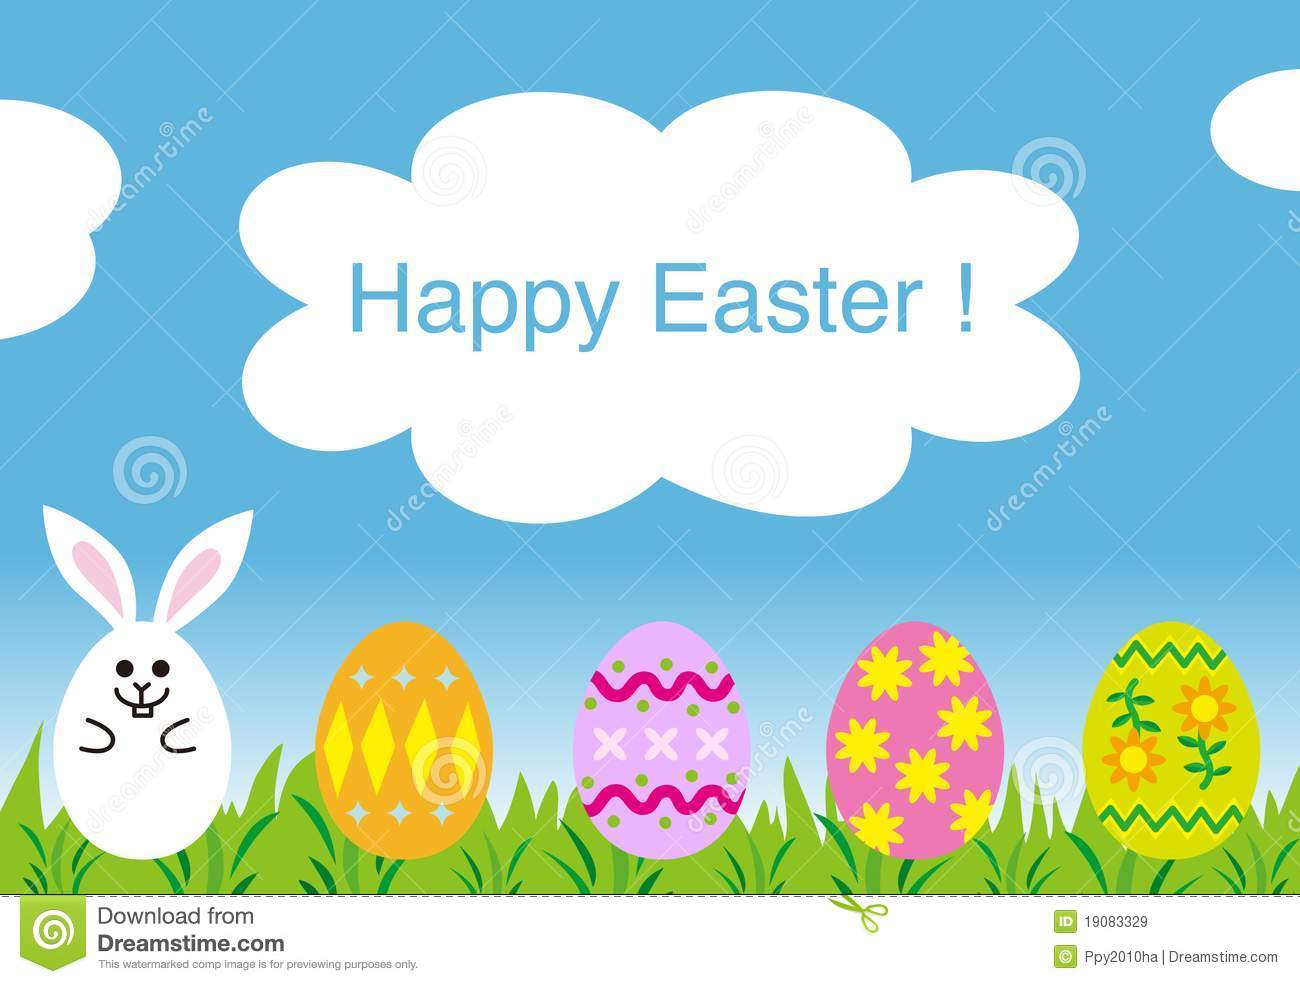 Happy Easter Greeting Card Easter Bunny Eggs Stock Illustration